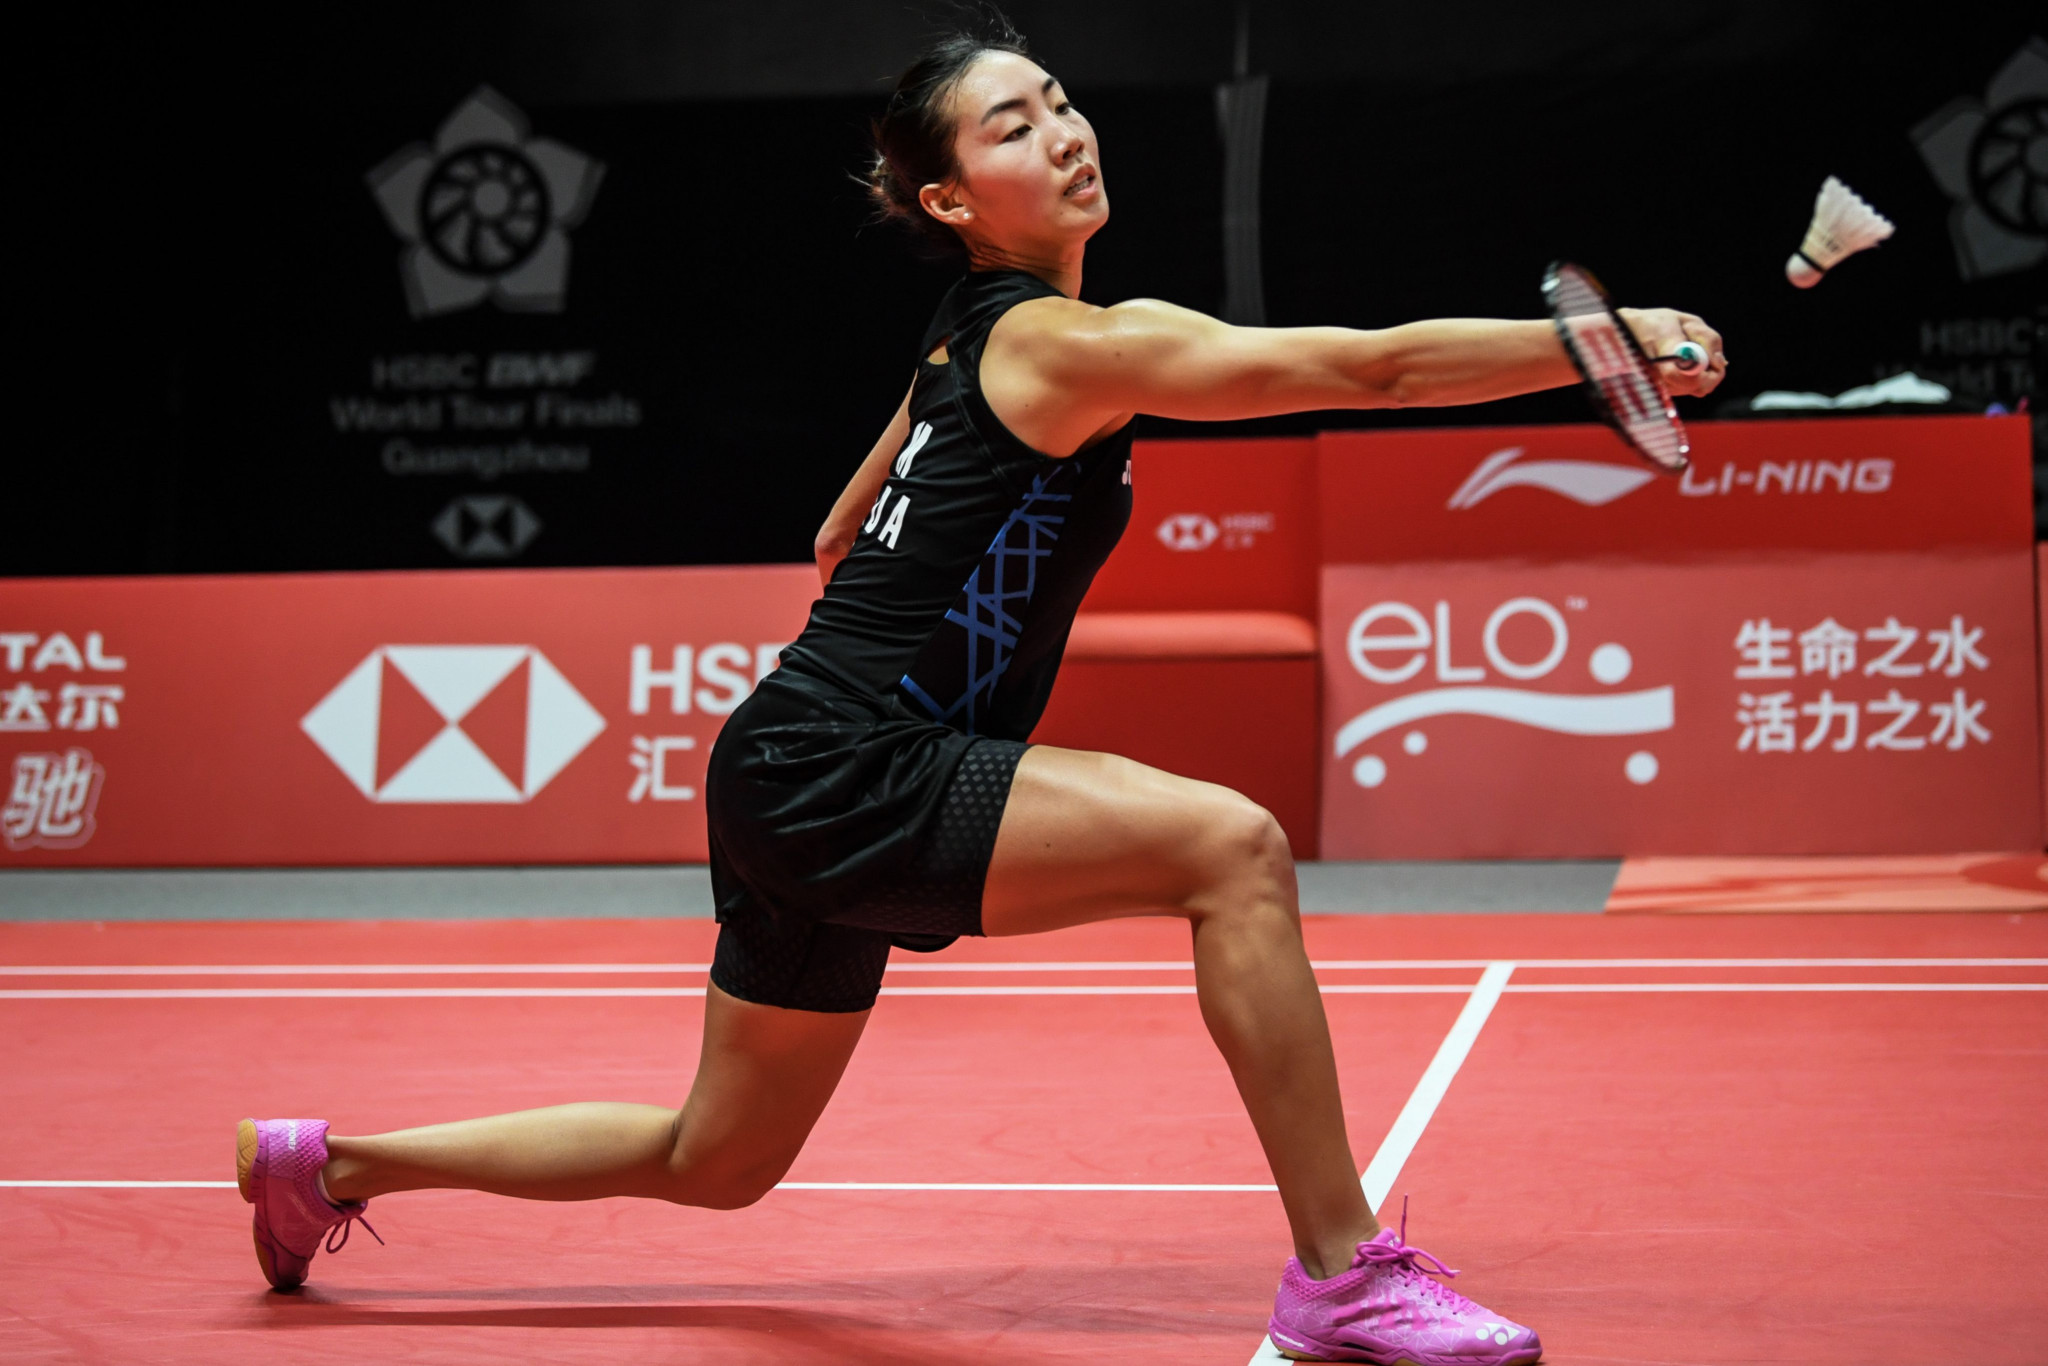 Michelle Li of Canada is the number one seed in the women's event ©Getty Images